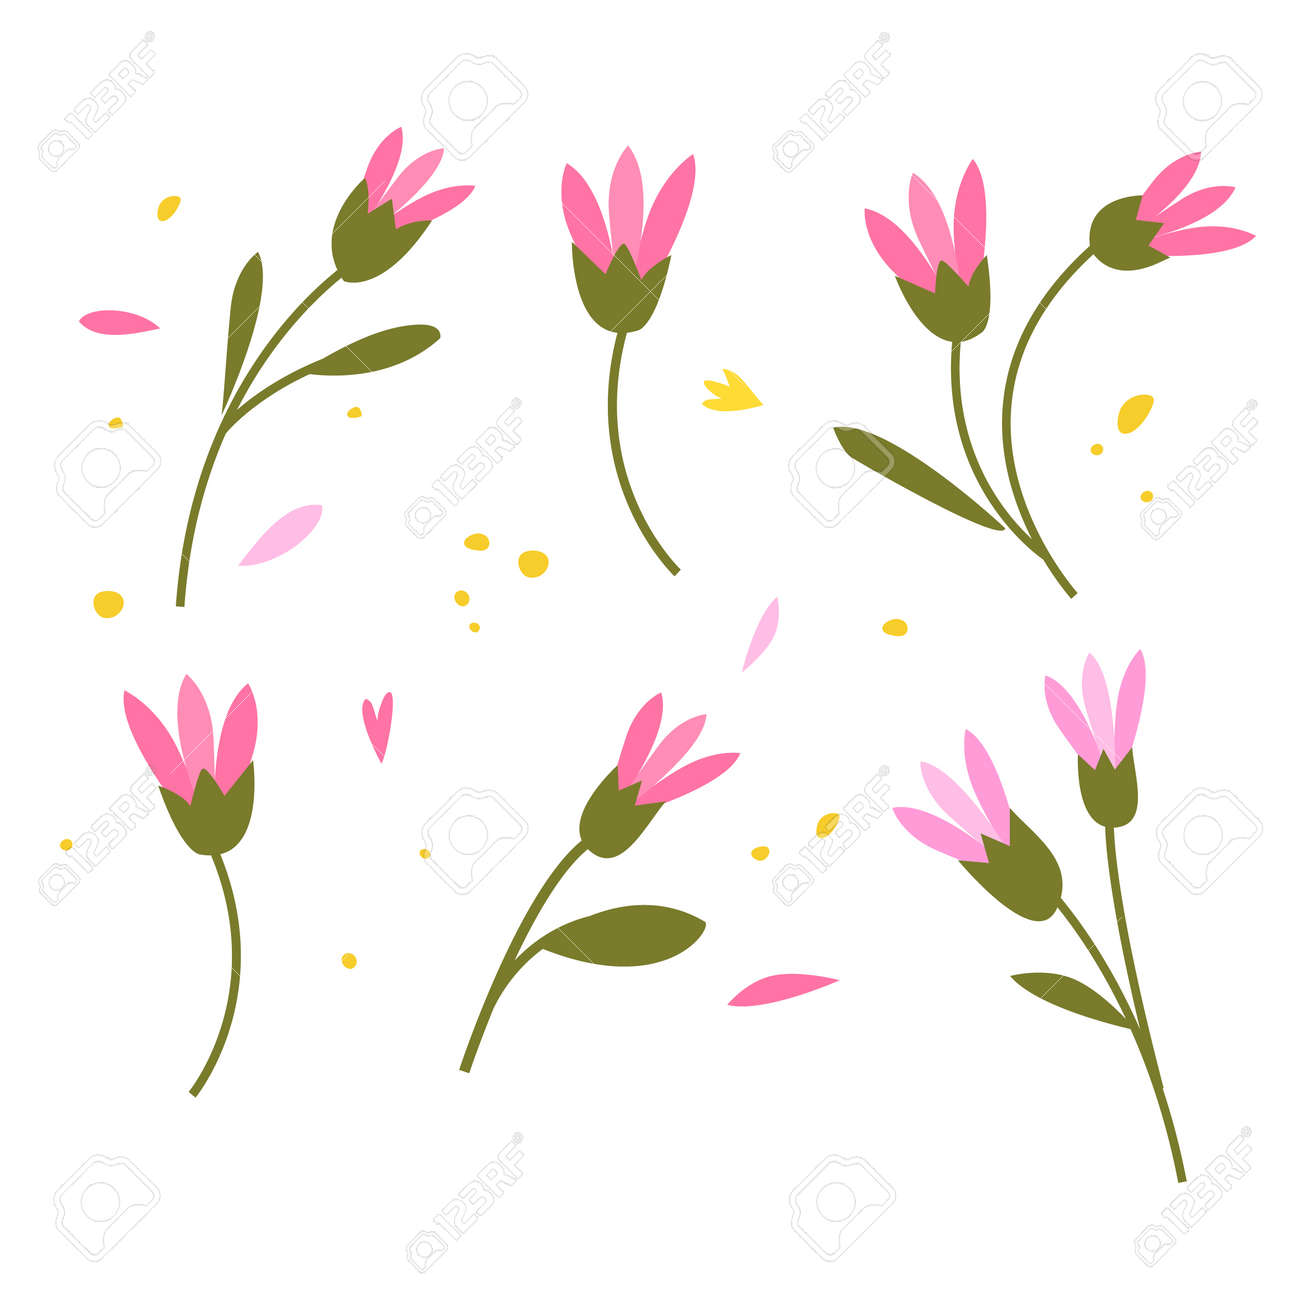 Collection of hand drawn plants. Botanical set of sketch flowers and branches, vector illustrations - 171448063